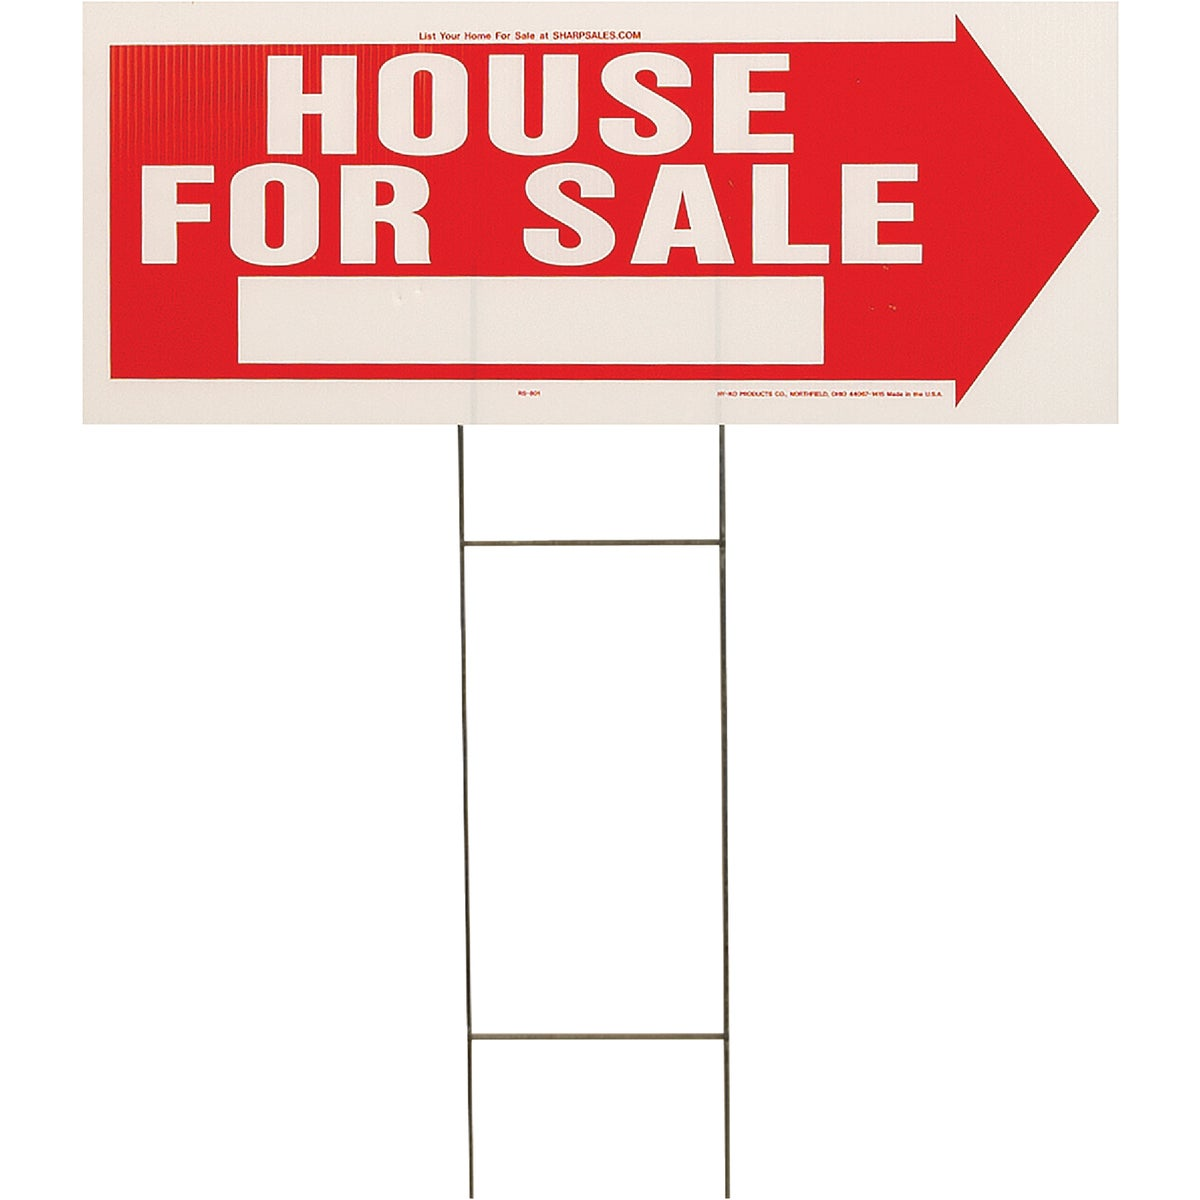 10X24 HOUSE/SALE SIGN - RS-801 by Hy Ko Prods Co